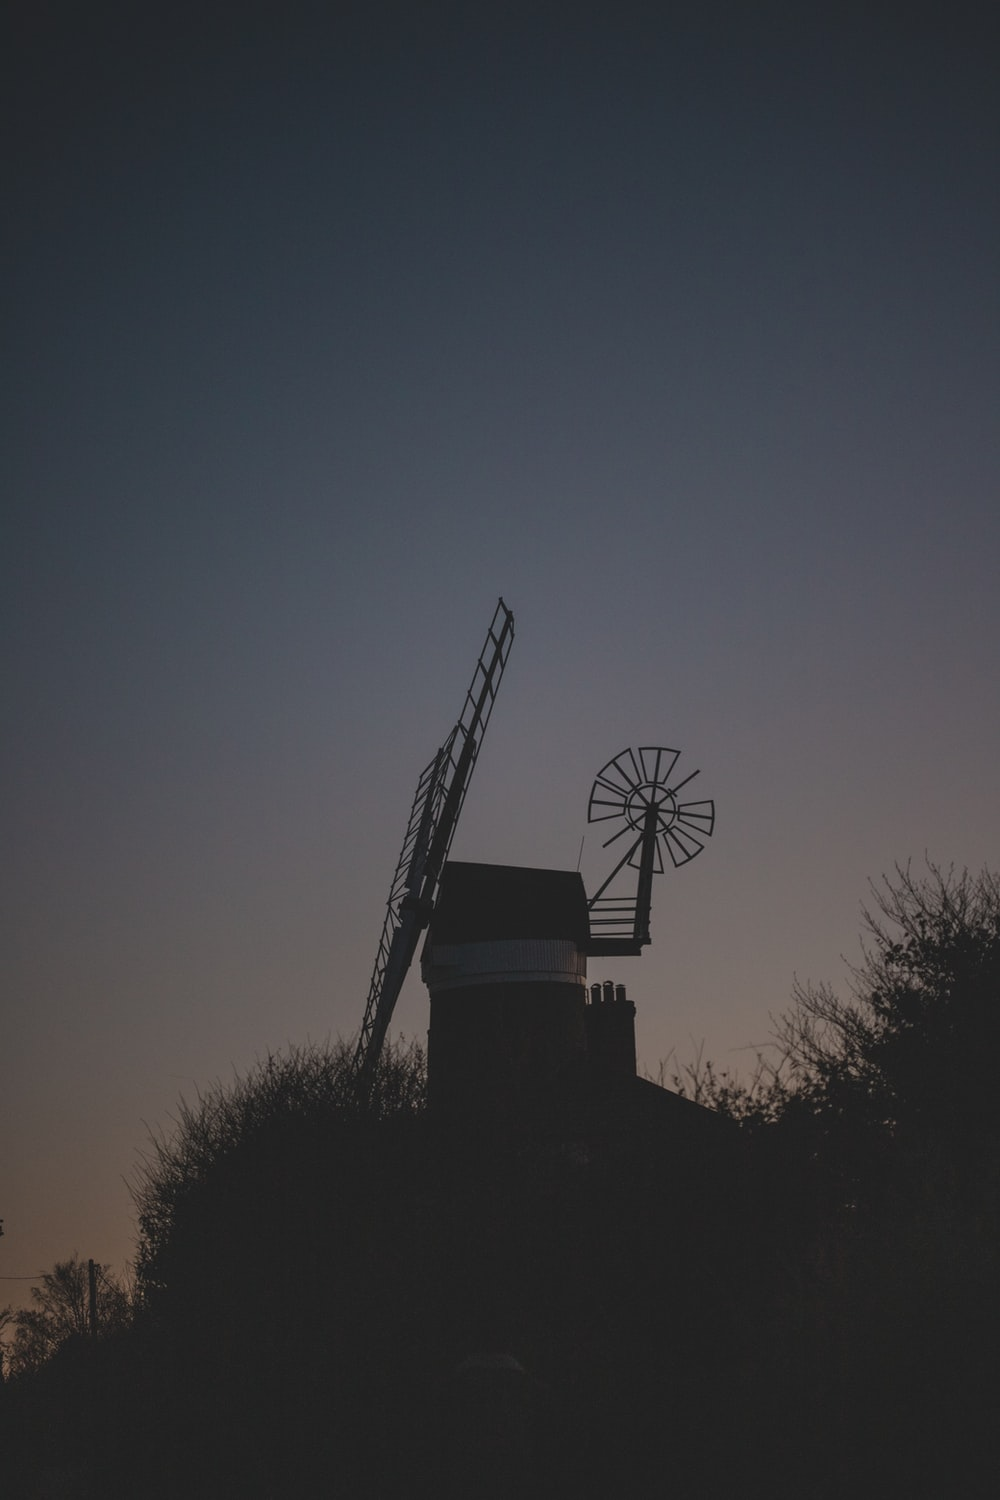 silhouette photography of windmill